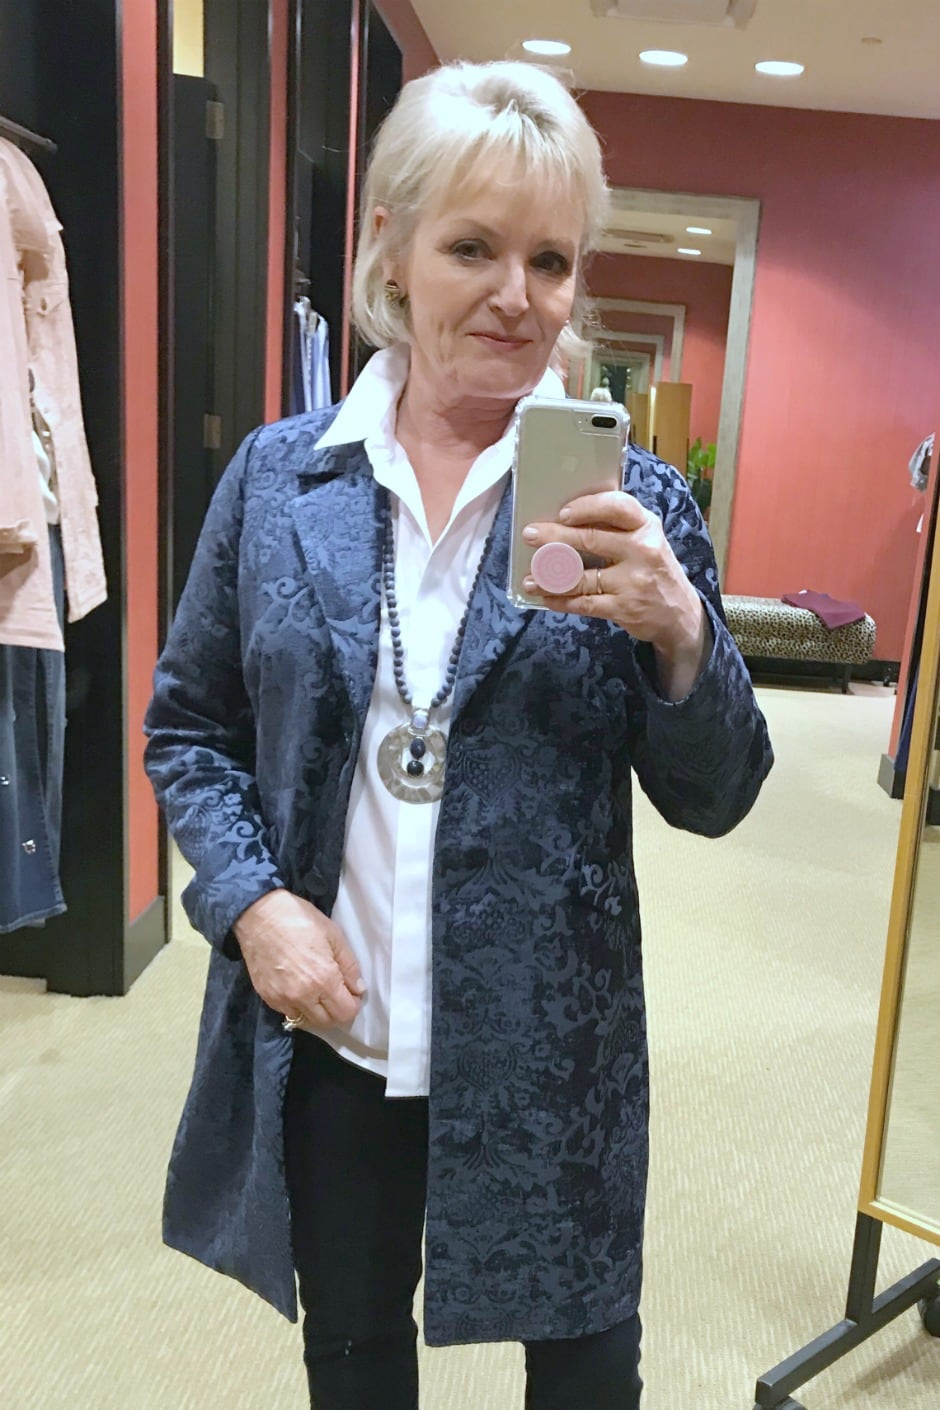 Jennifer of A Well Styled Life wearing Chenille Jacquard jacket from Chico's